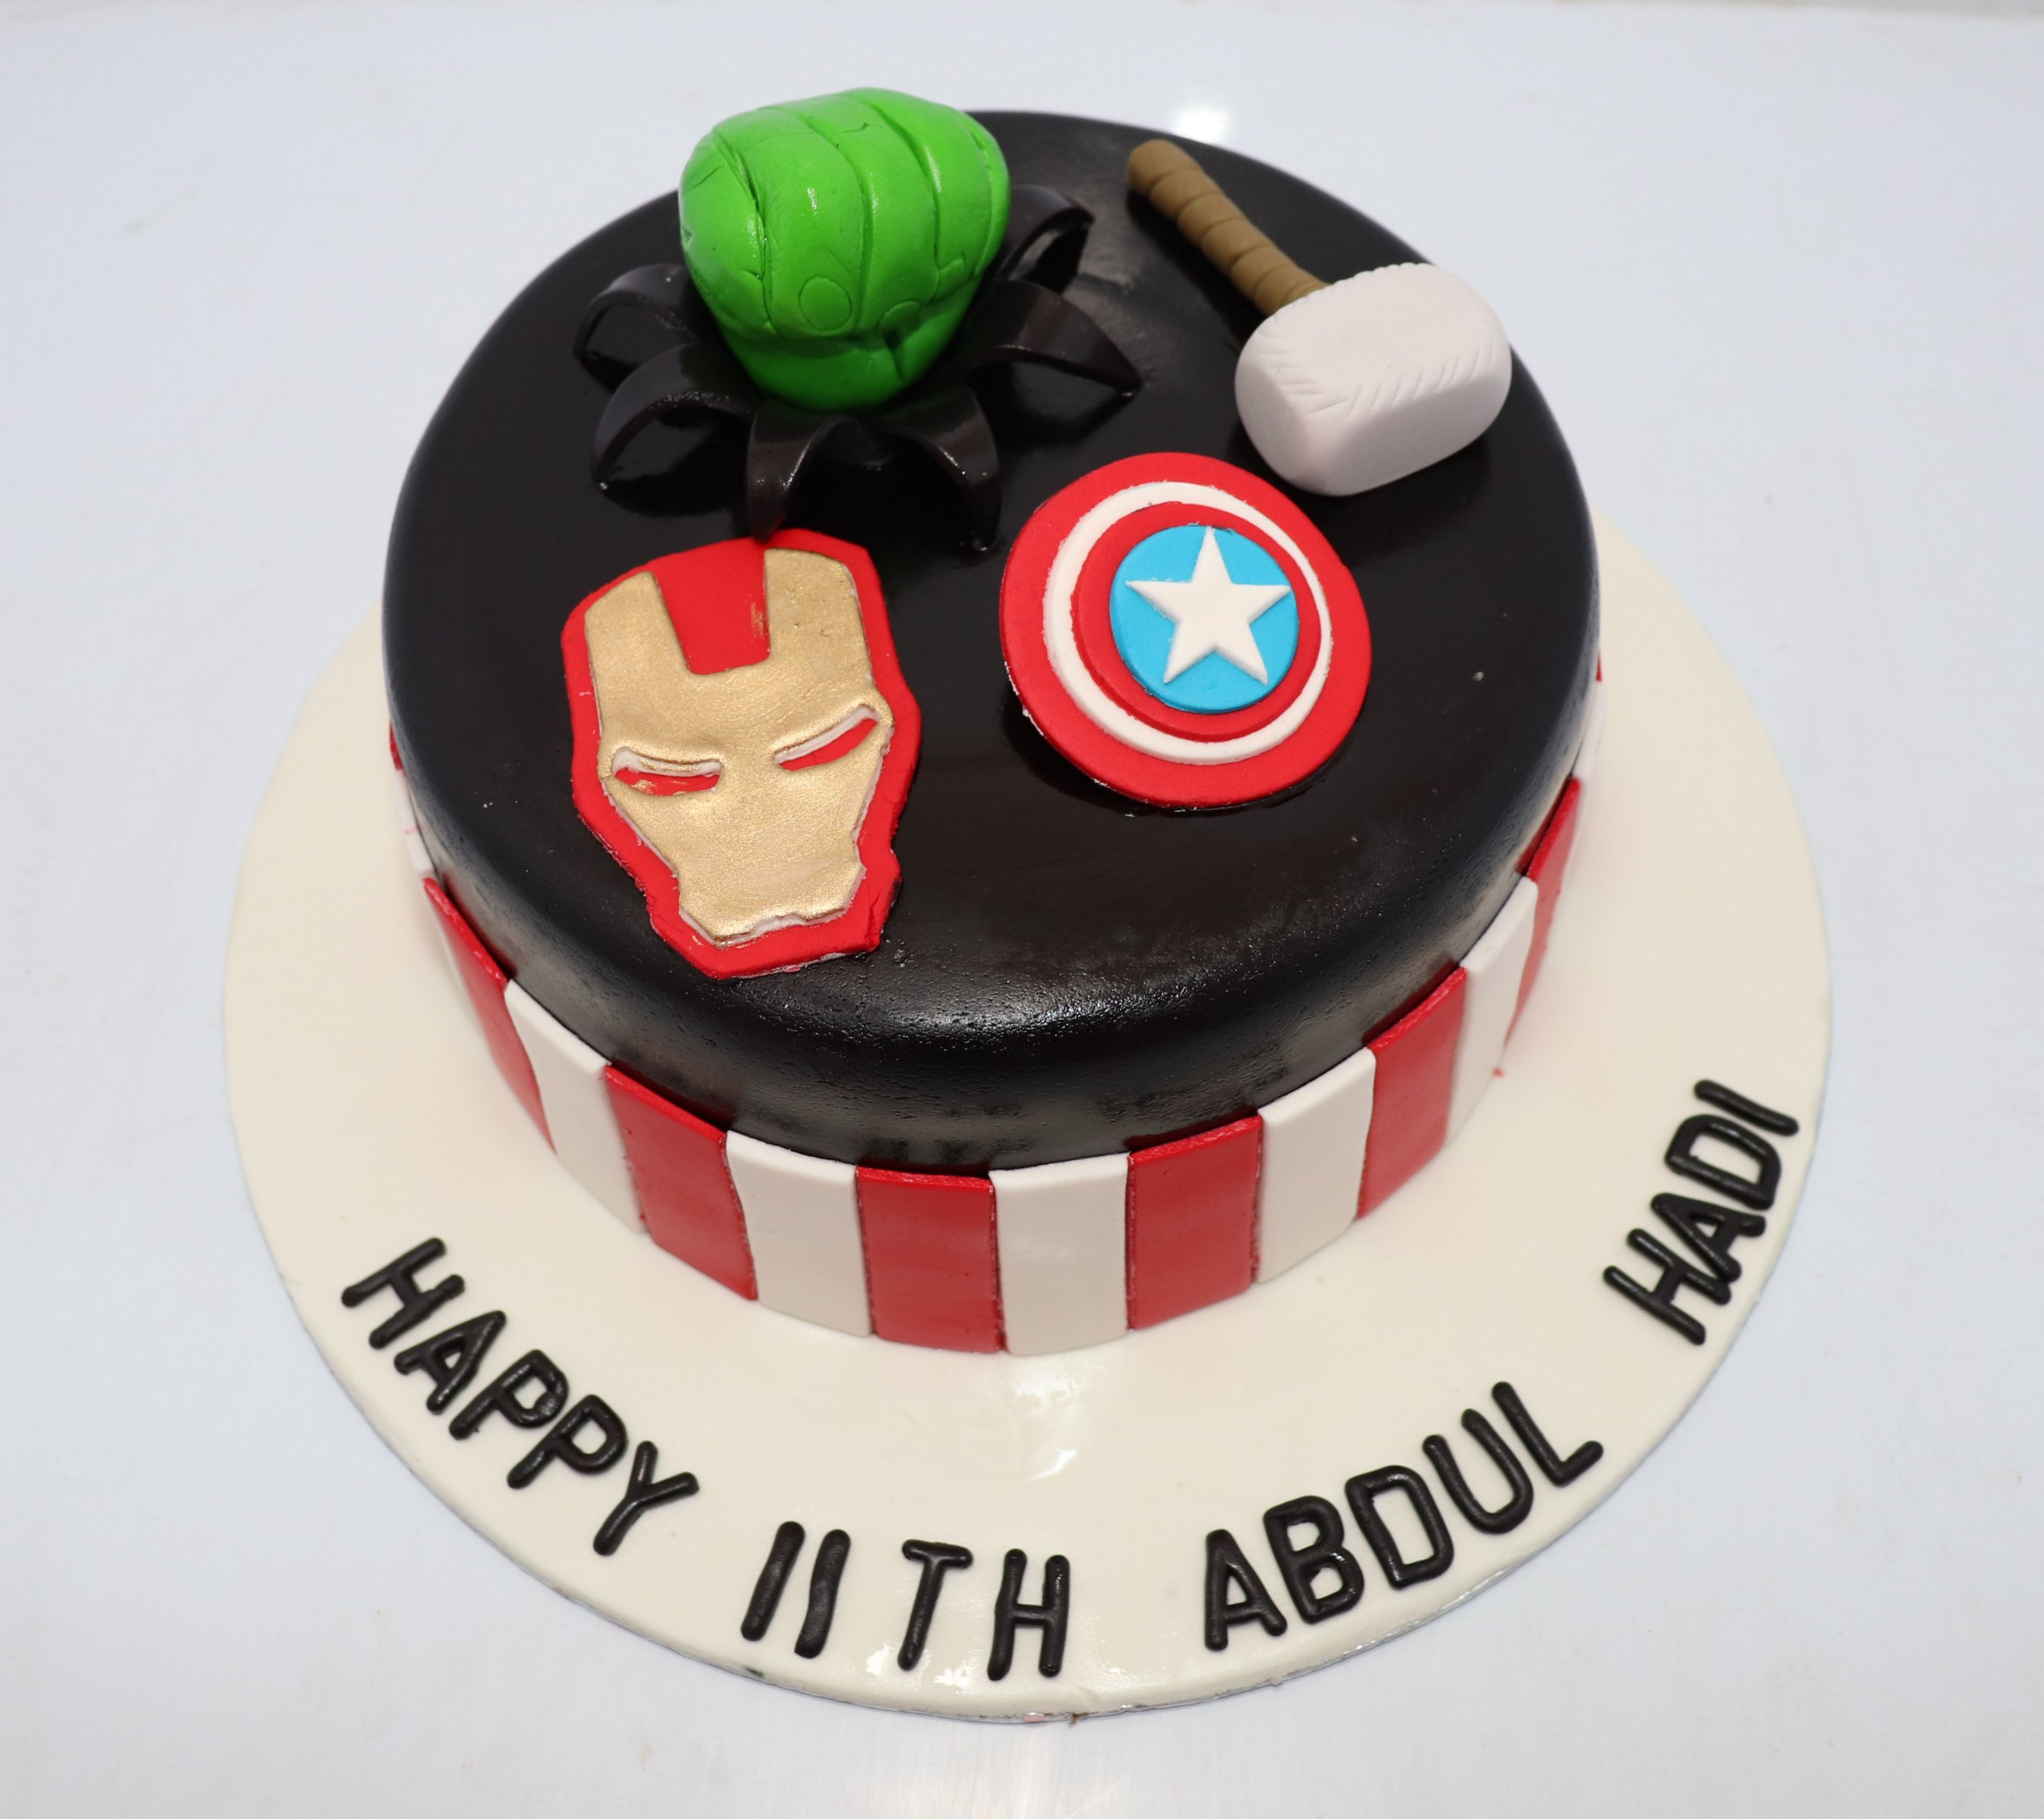 Astounding Superhero Birthday Cake Online Gifts For Husband In Pakistan Personalised Birthday Cards Rectzonderlifede